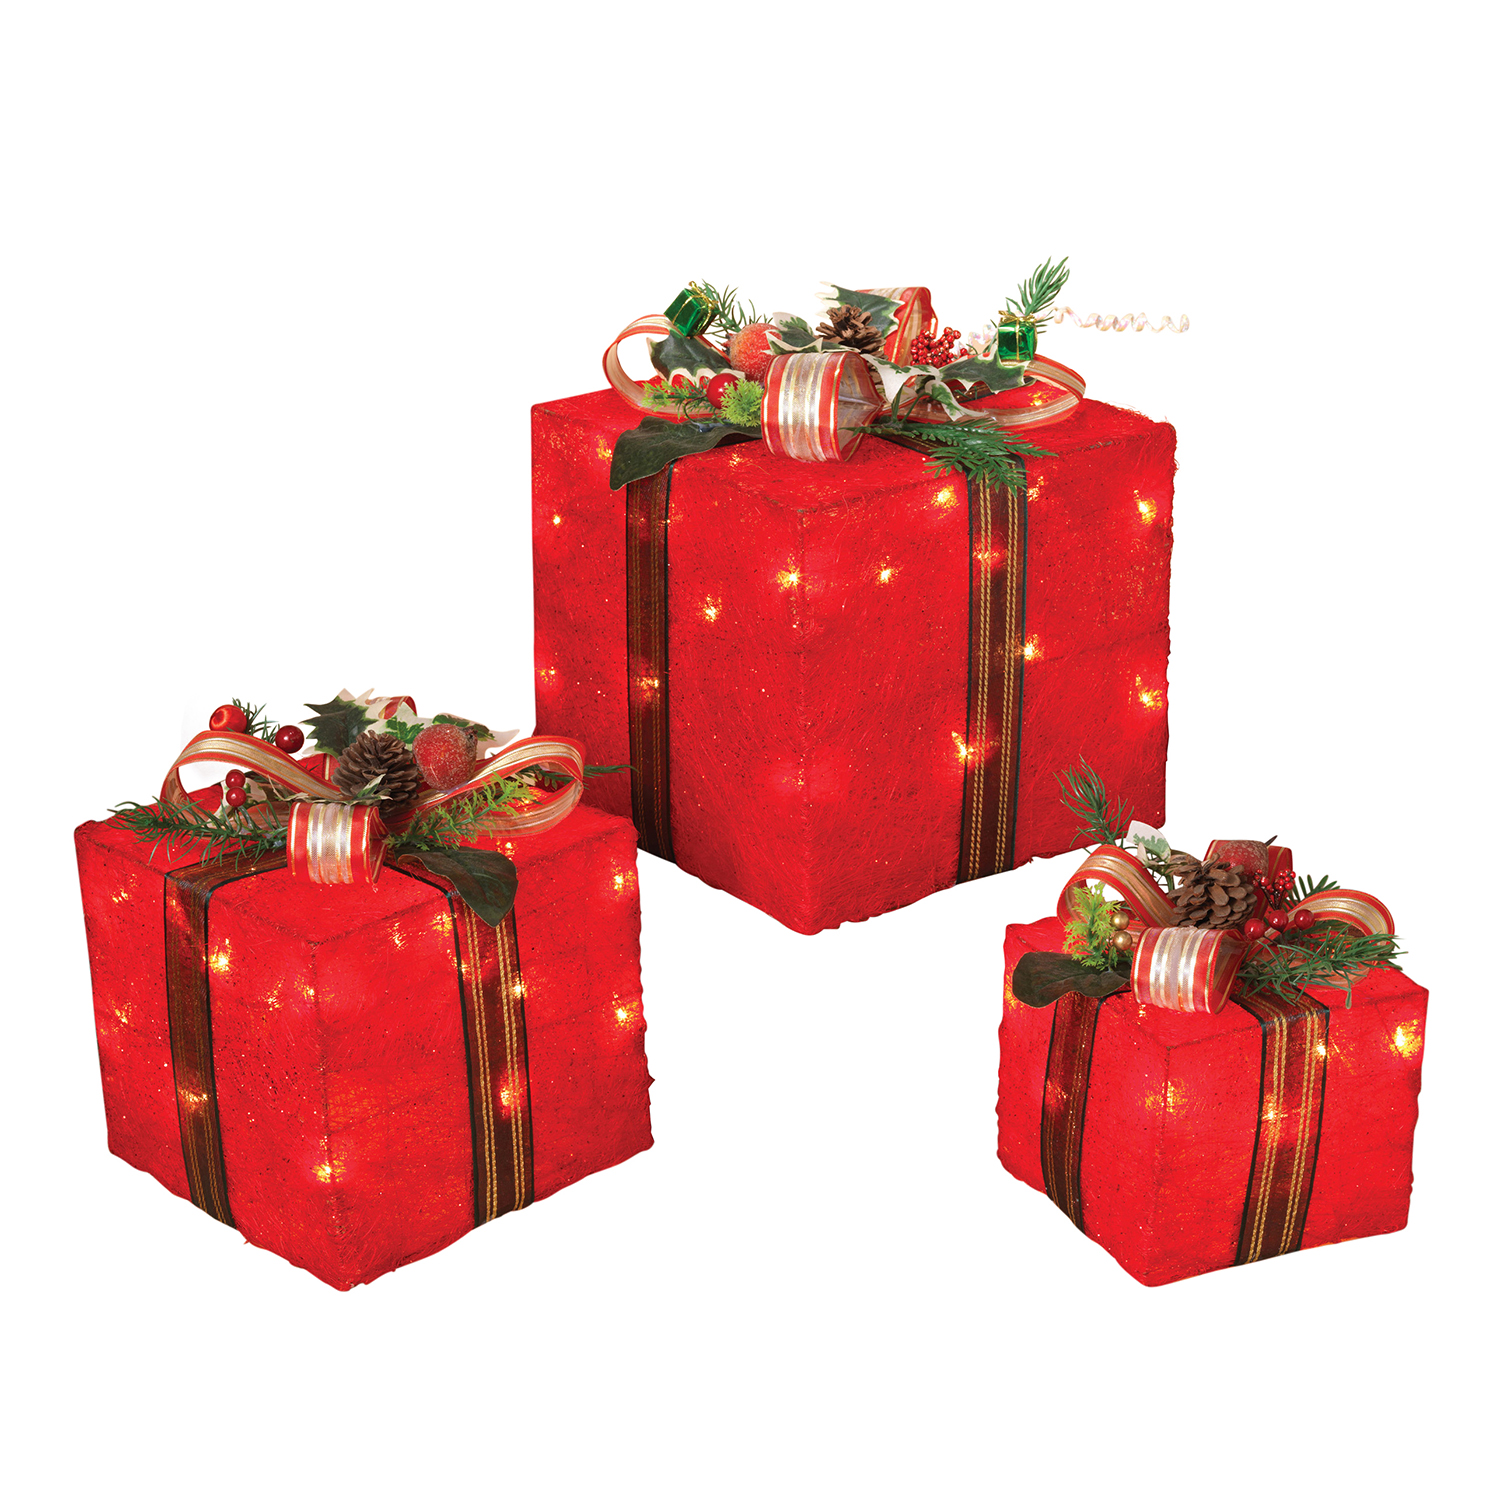 Details About Indoor Outdoor Light Up Red Christmas Gift Boxes Presents Lights Lawn Yard Decor